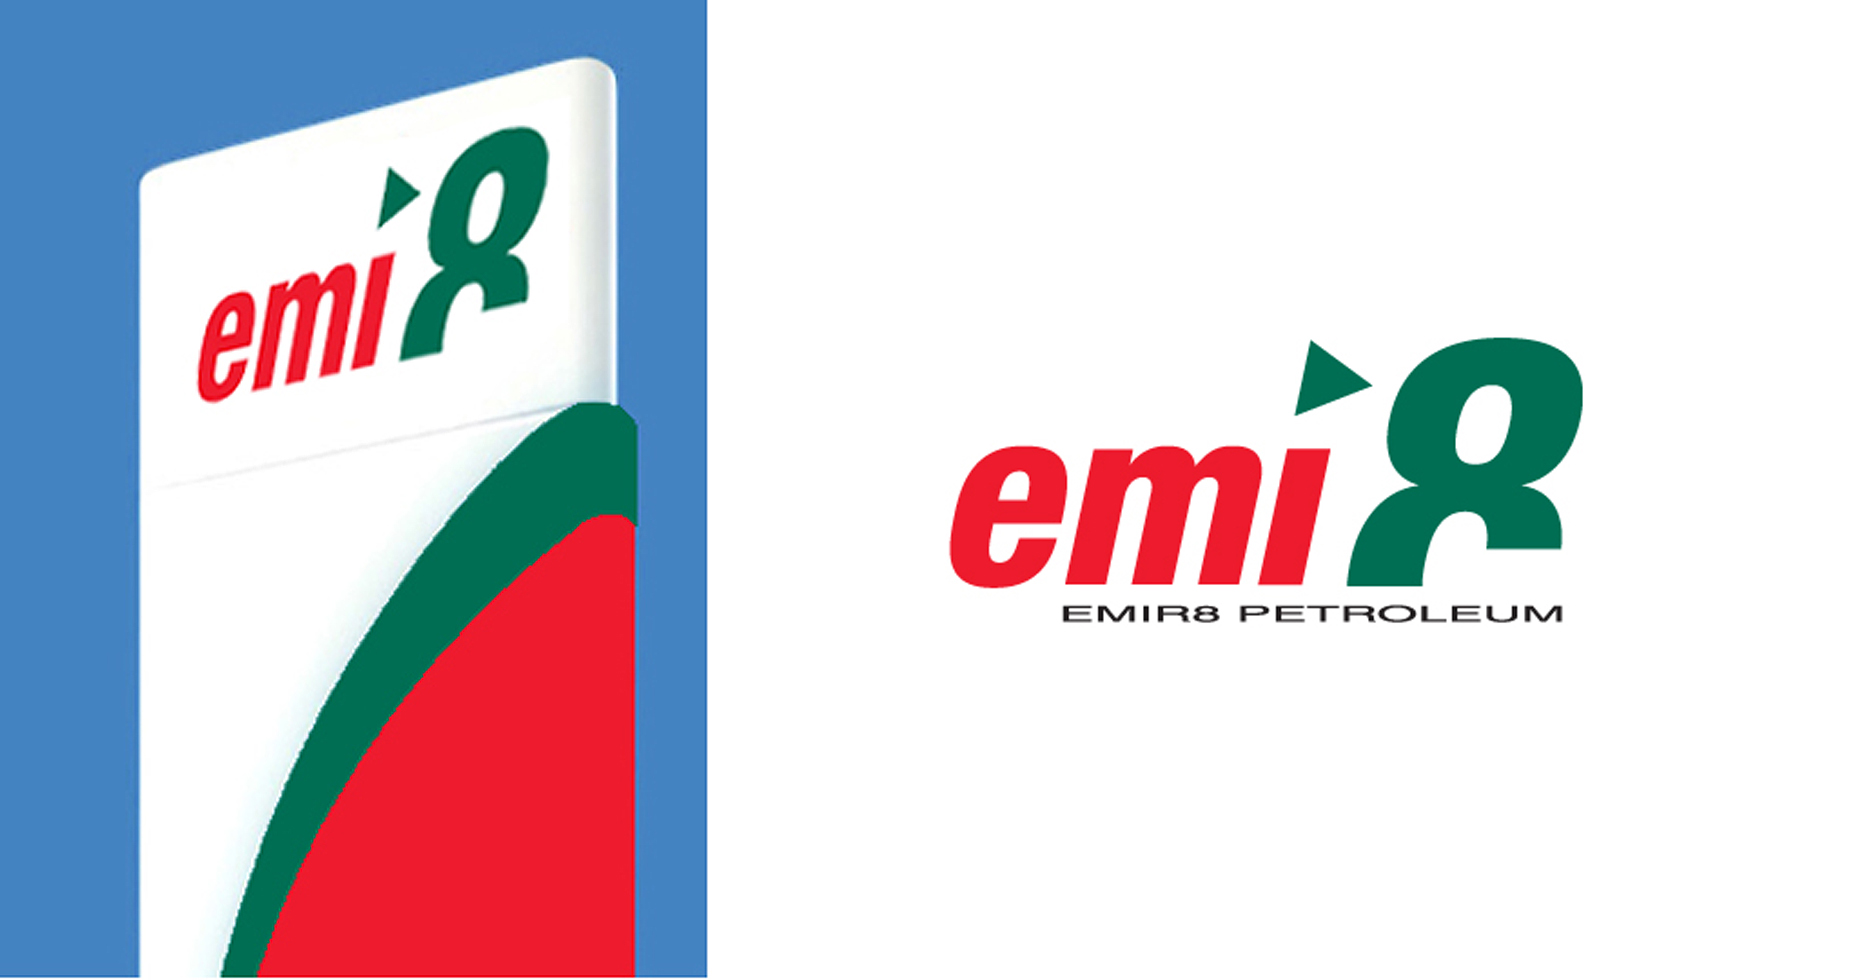 Station forecourt sign and Logo in red and dark green for EMIR8 petroleum